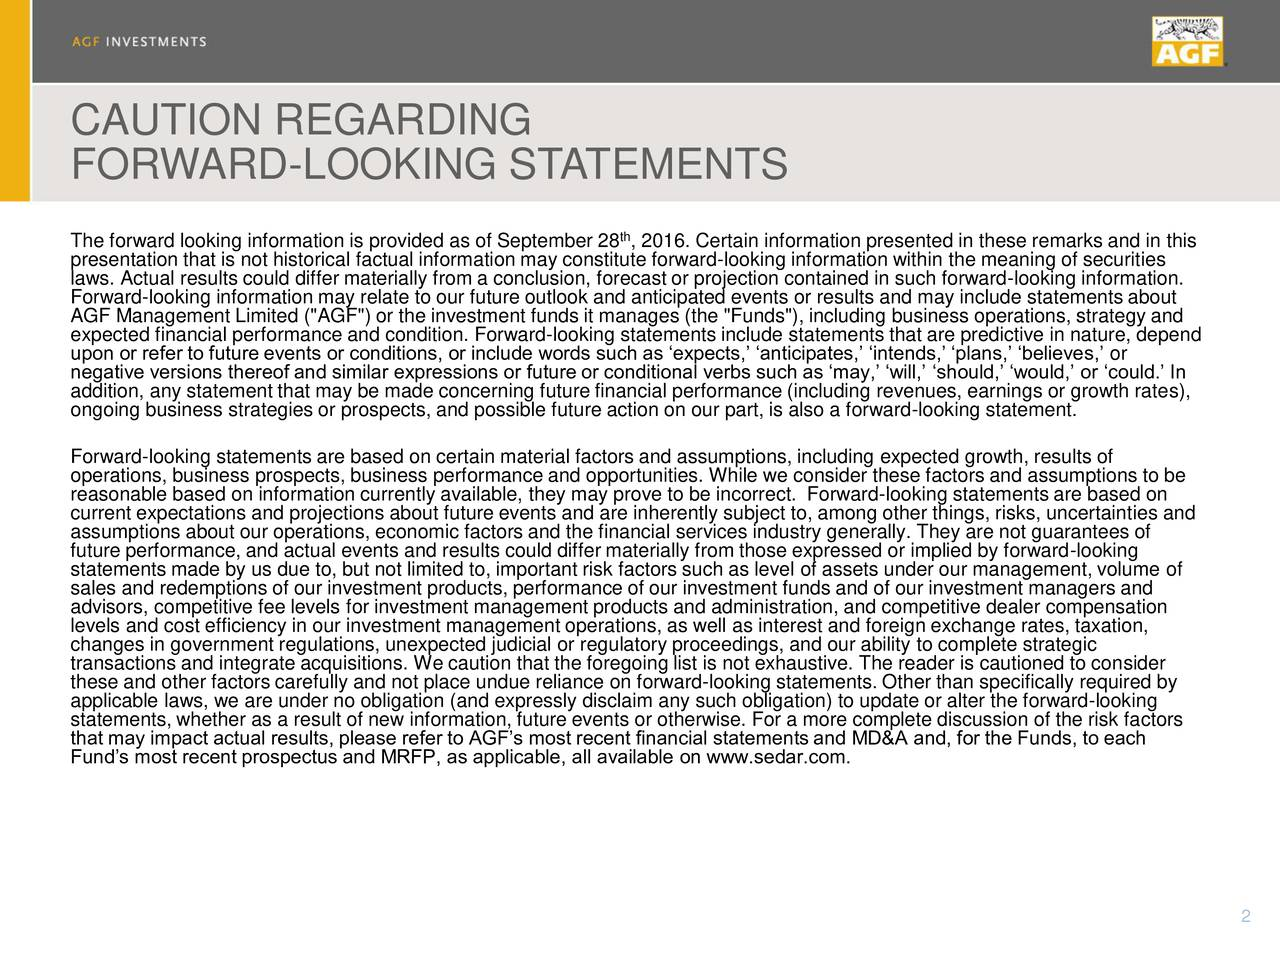 """FORWARD-LOOKING STATEMENTS The forward looking information is provided as of September 28 , 2016. Certain information presented in these remarks and in this presentation that is not historical factual information may constitute forward-looking information within the meaning of securities laws. Actual results could differ materially from a conclusion, forecast or projection contained in such forward-looking information. AGF Management Limited (""""AGF"""") or the investment funds it manages (the """"Funds""""), including business operations, strategy andout expected financial performance and condition. Forward-looking statements include statements that are predictive in nature, depend upon or refer to future events or conditions, or include words such as expects, anticipates, intends, plans, believes, or negative versions thereof and similar expressions or future or conditional verbs such as may, will, should, would, or could. In addition, any statement that may be made concerning future financial performance (including revenues, earnings or growth rates), ongoing business strategies or prospects, and possible future action on our part, is also a forward-looking statement. Forward-looking statements are based on certain material factors and assumptions, including expected growth, results of operations, business prospects, business performance and opportunities. While we consider these factors and assumptions to be reasonable based on information currently available, they may prove to be incorrect. Forward-looking statements are based on current expectations and projections about future events and are inherently subject to, among other things, risks, uncertainties and assumptions about our operations, economic factors and the financial services industry generally. They are not guarantees of future performance, and actual events and results could differ materially from those expressed or implied by forward-looking sales and redemptions of our investment products, performance of ou"""